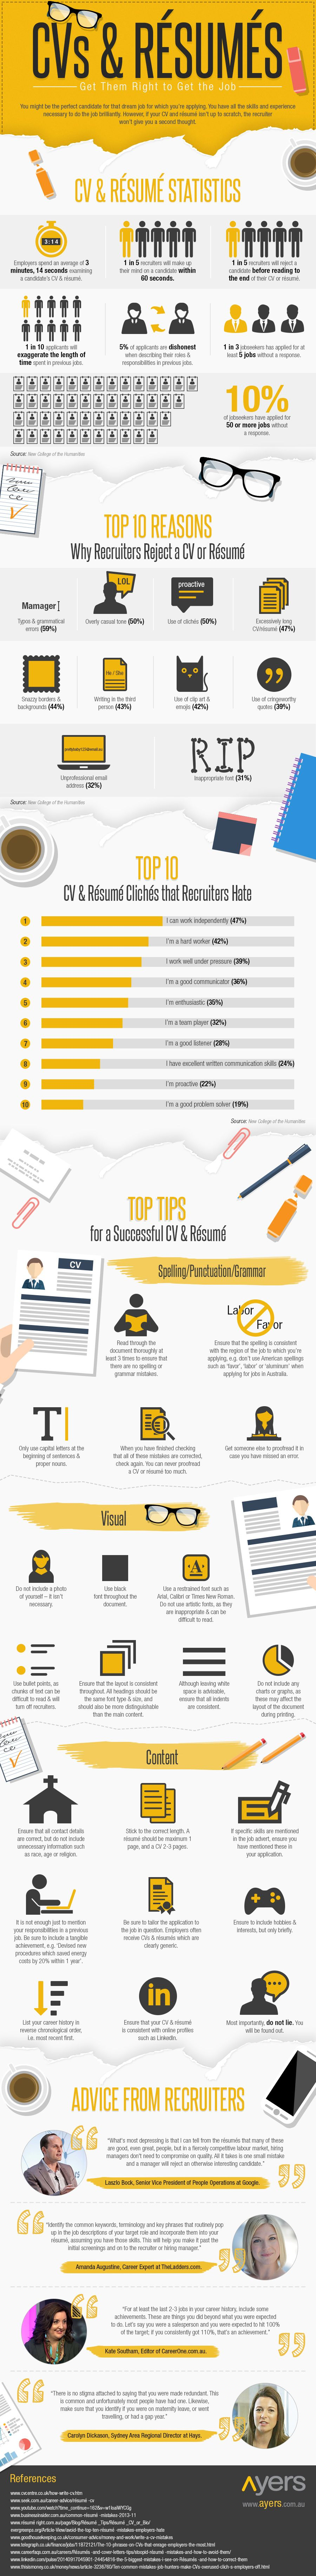 Resume Job Endearing Your Resume Has 3 Minutes 14 Seconds To Make A Good Expressionnice .